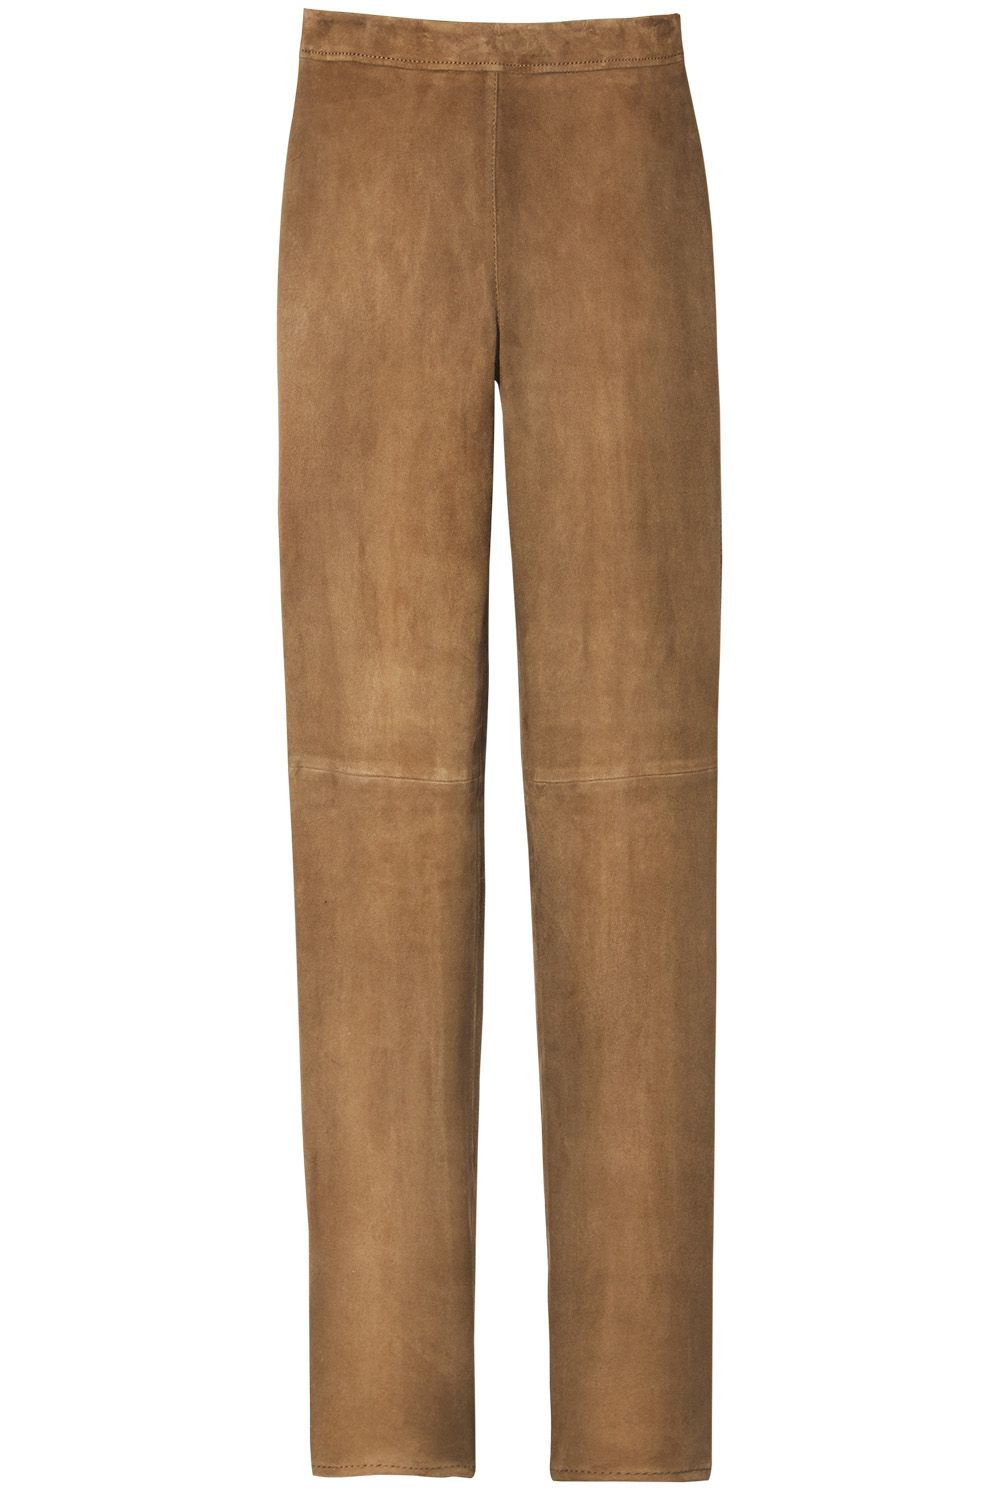 """<p><strong data-redactor-tag=""""strong"""" data-verified=""""redactor"""">Talbots</strong> leggings, $499,<a href=""""http://www.talbots.com/"""" target=""""_blank"""">talbots.com</a>.<span class=""""redactor-invisible-space""""></span></p>"""